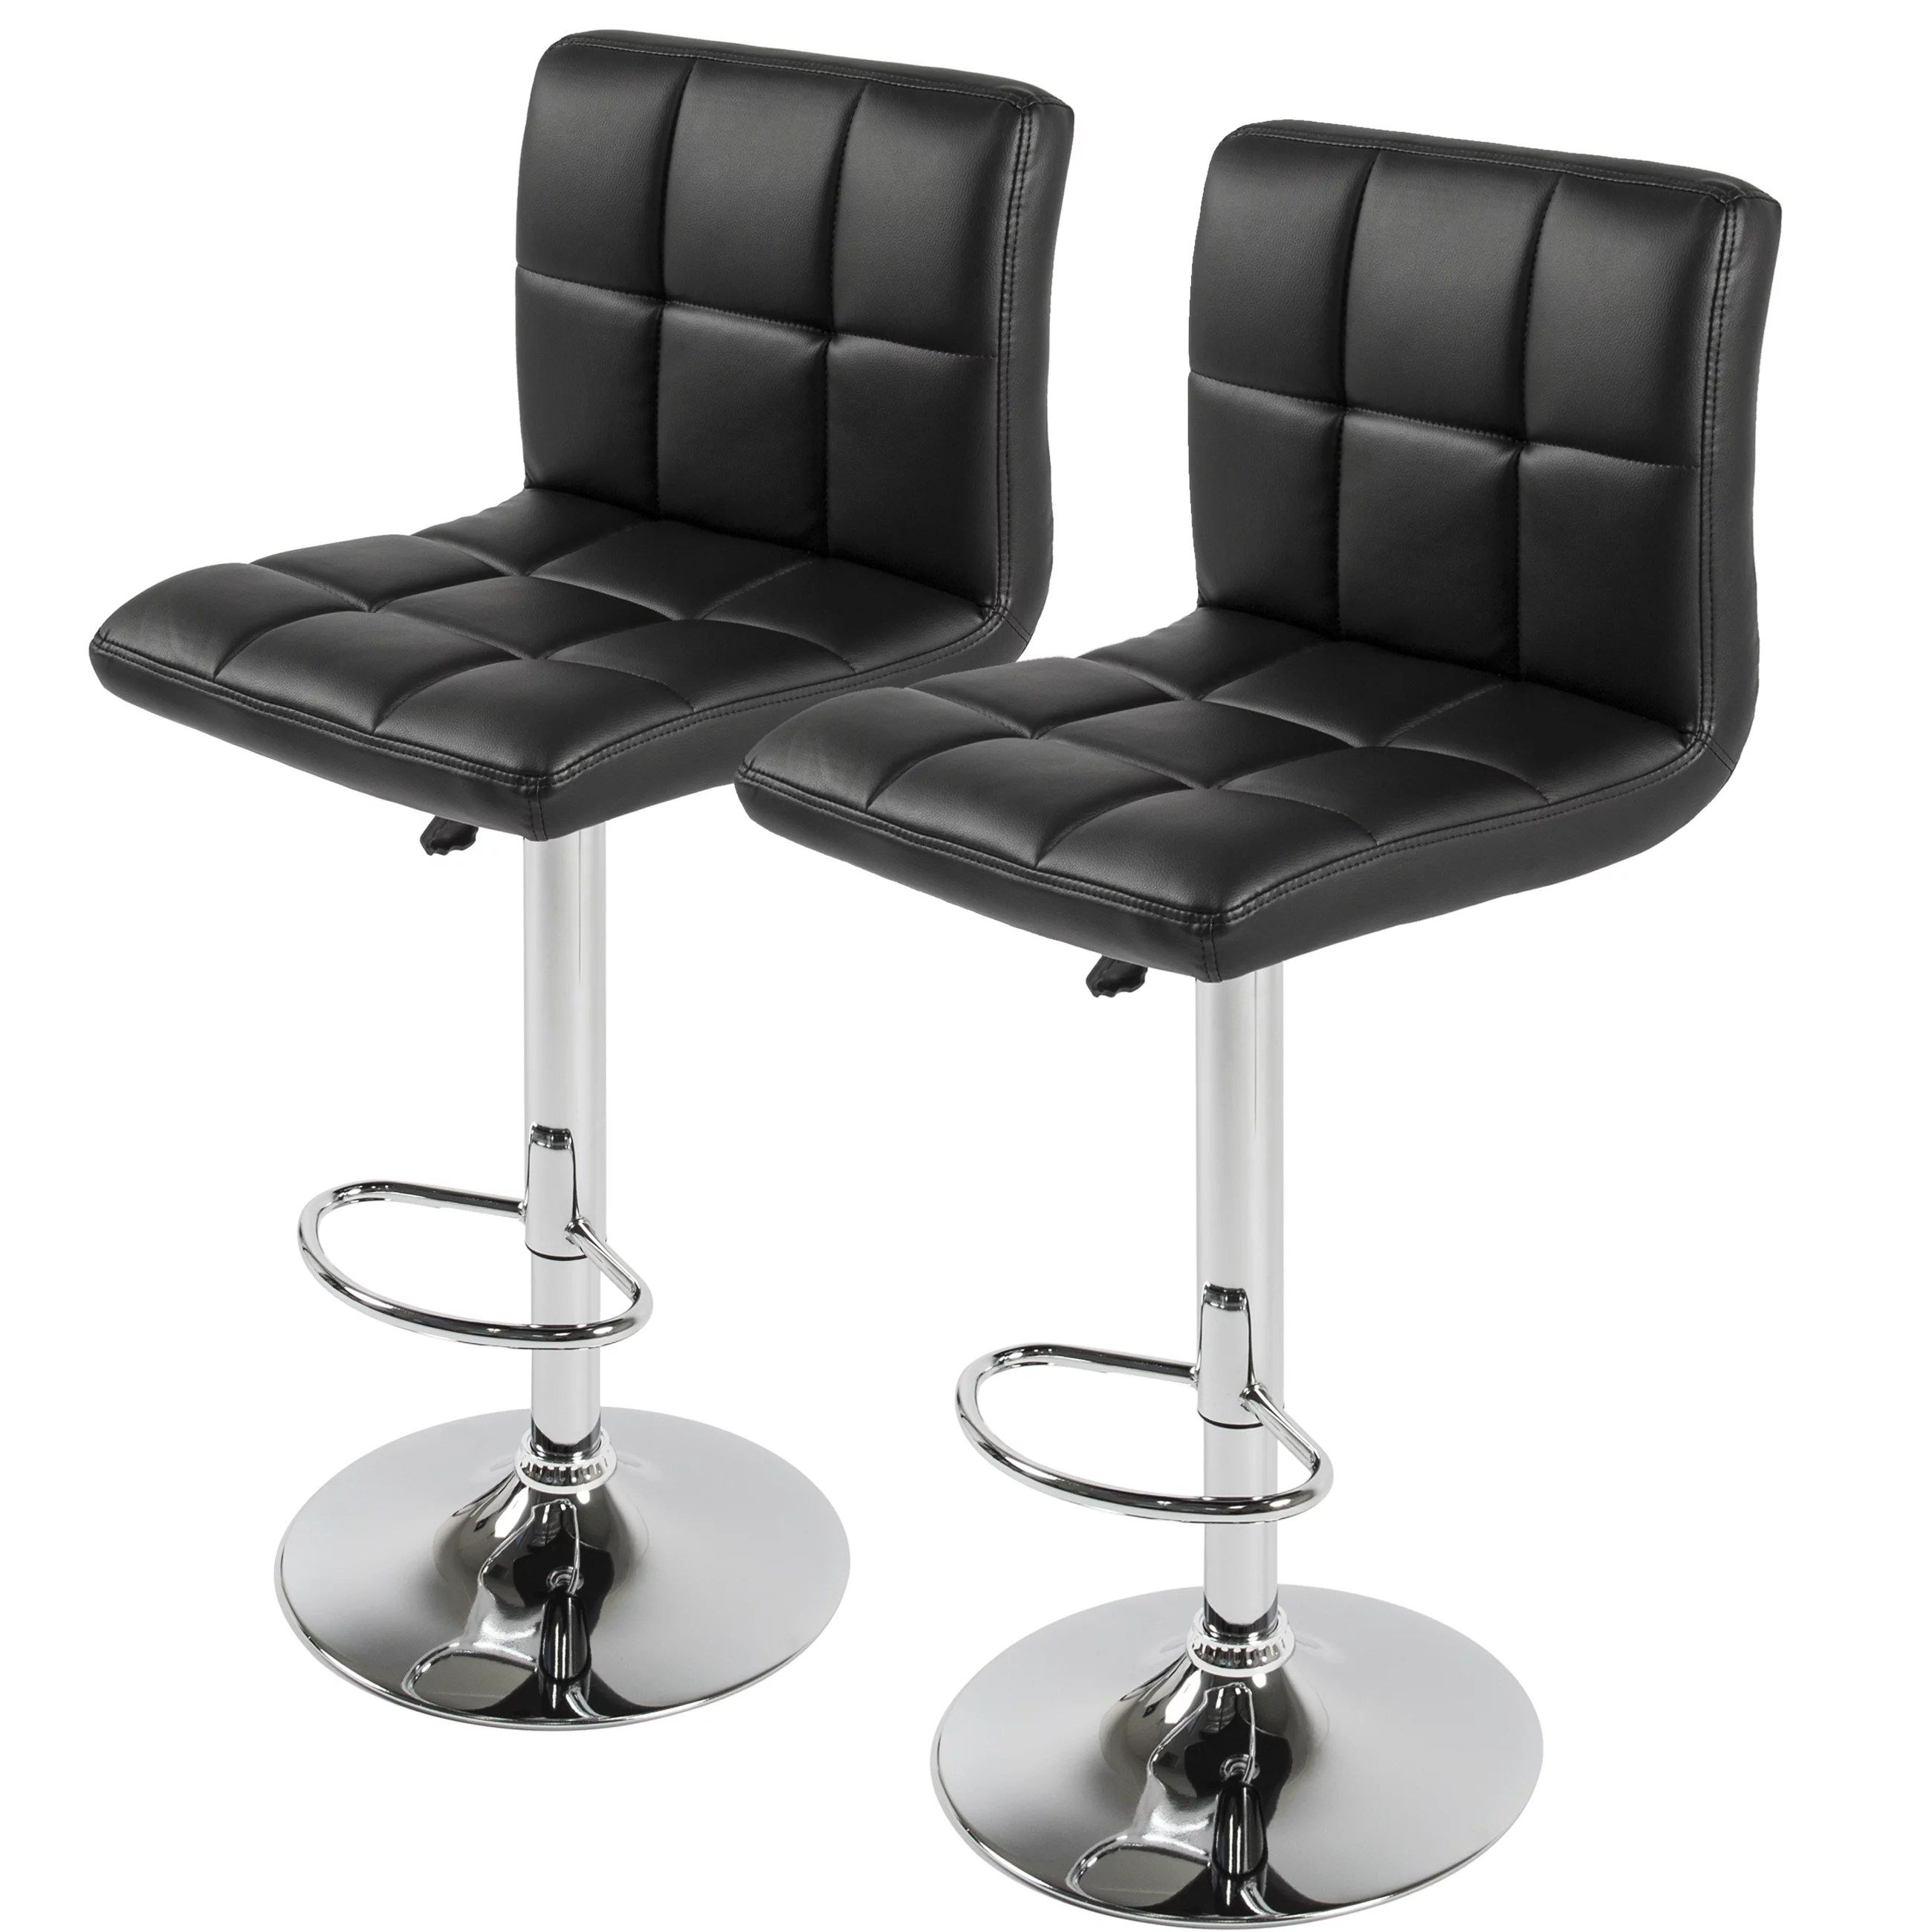 Bar Stool Chairs Best Choice Products Set Of 2 Pu Leather Adjustable Bar Stools Counter Swivel Barstool Pub Black